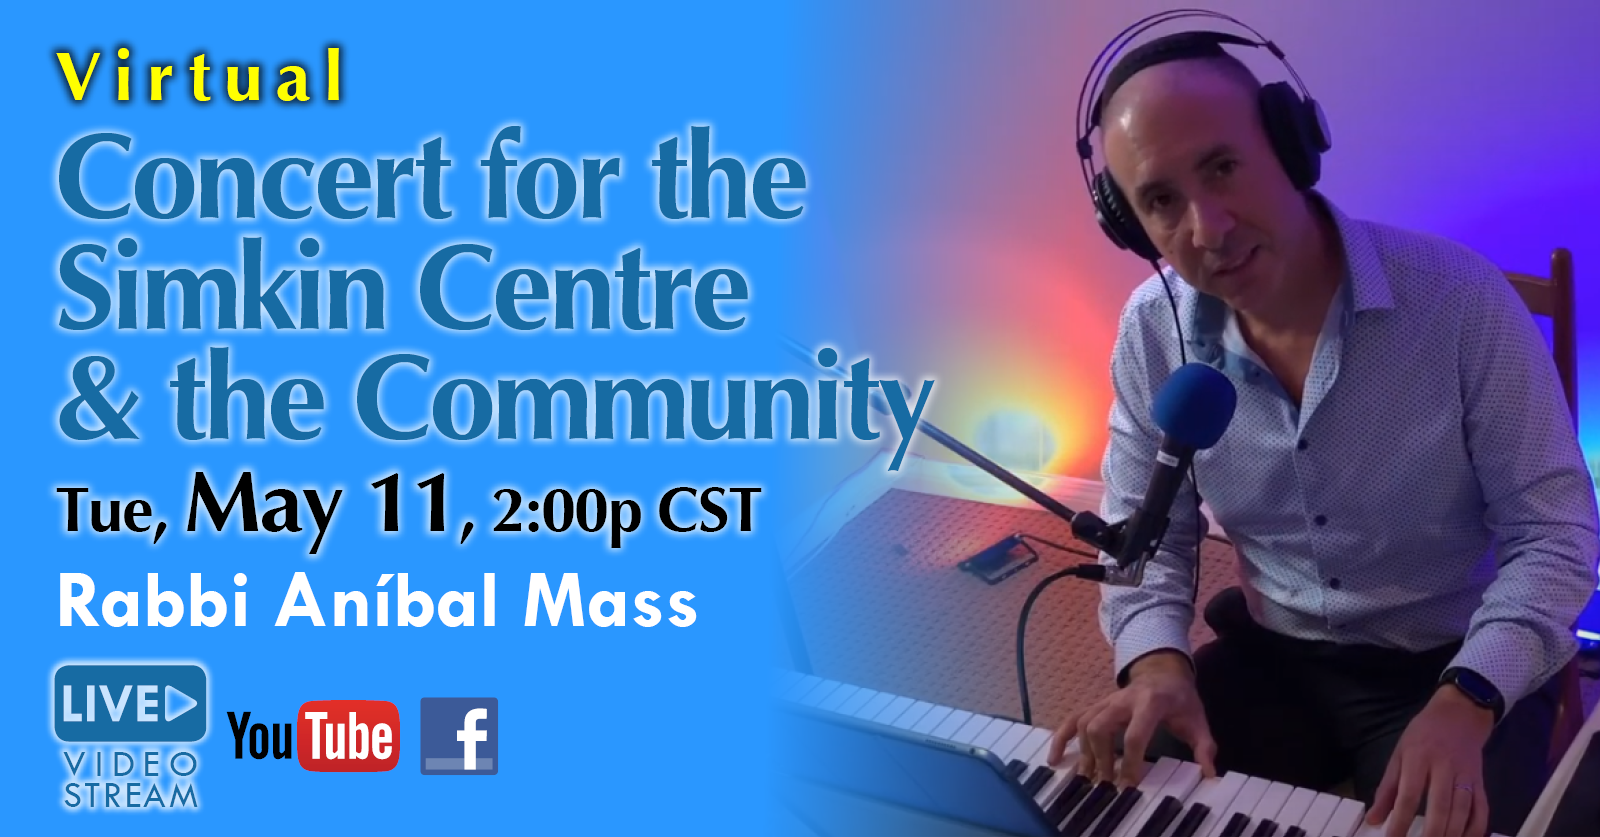 Banner Image for Concert for the Simkin Centre & the Community